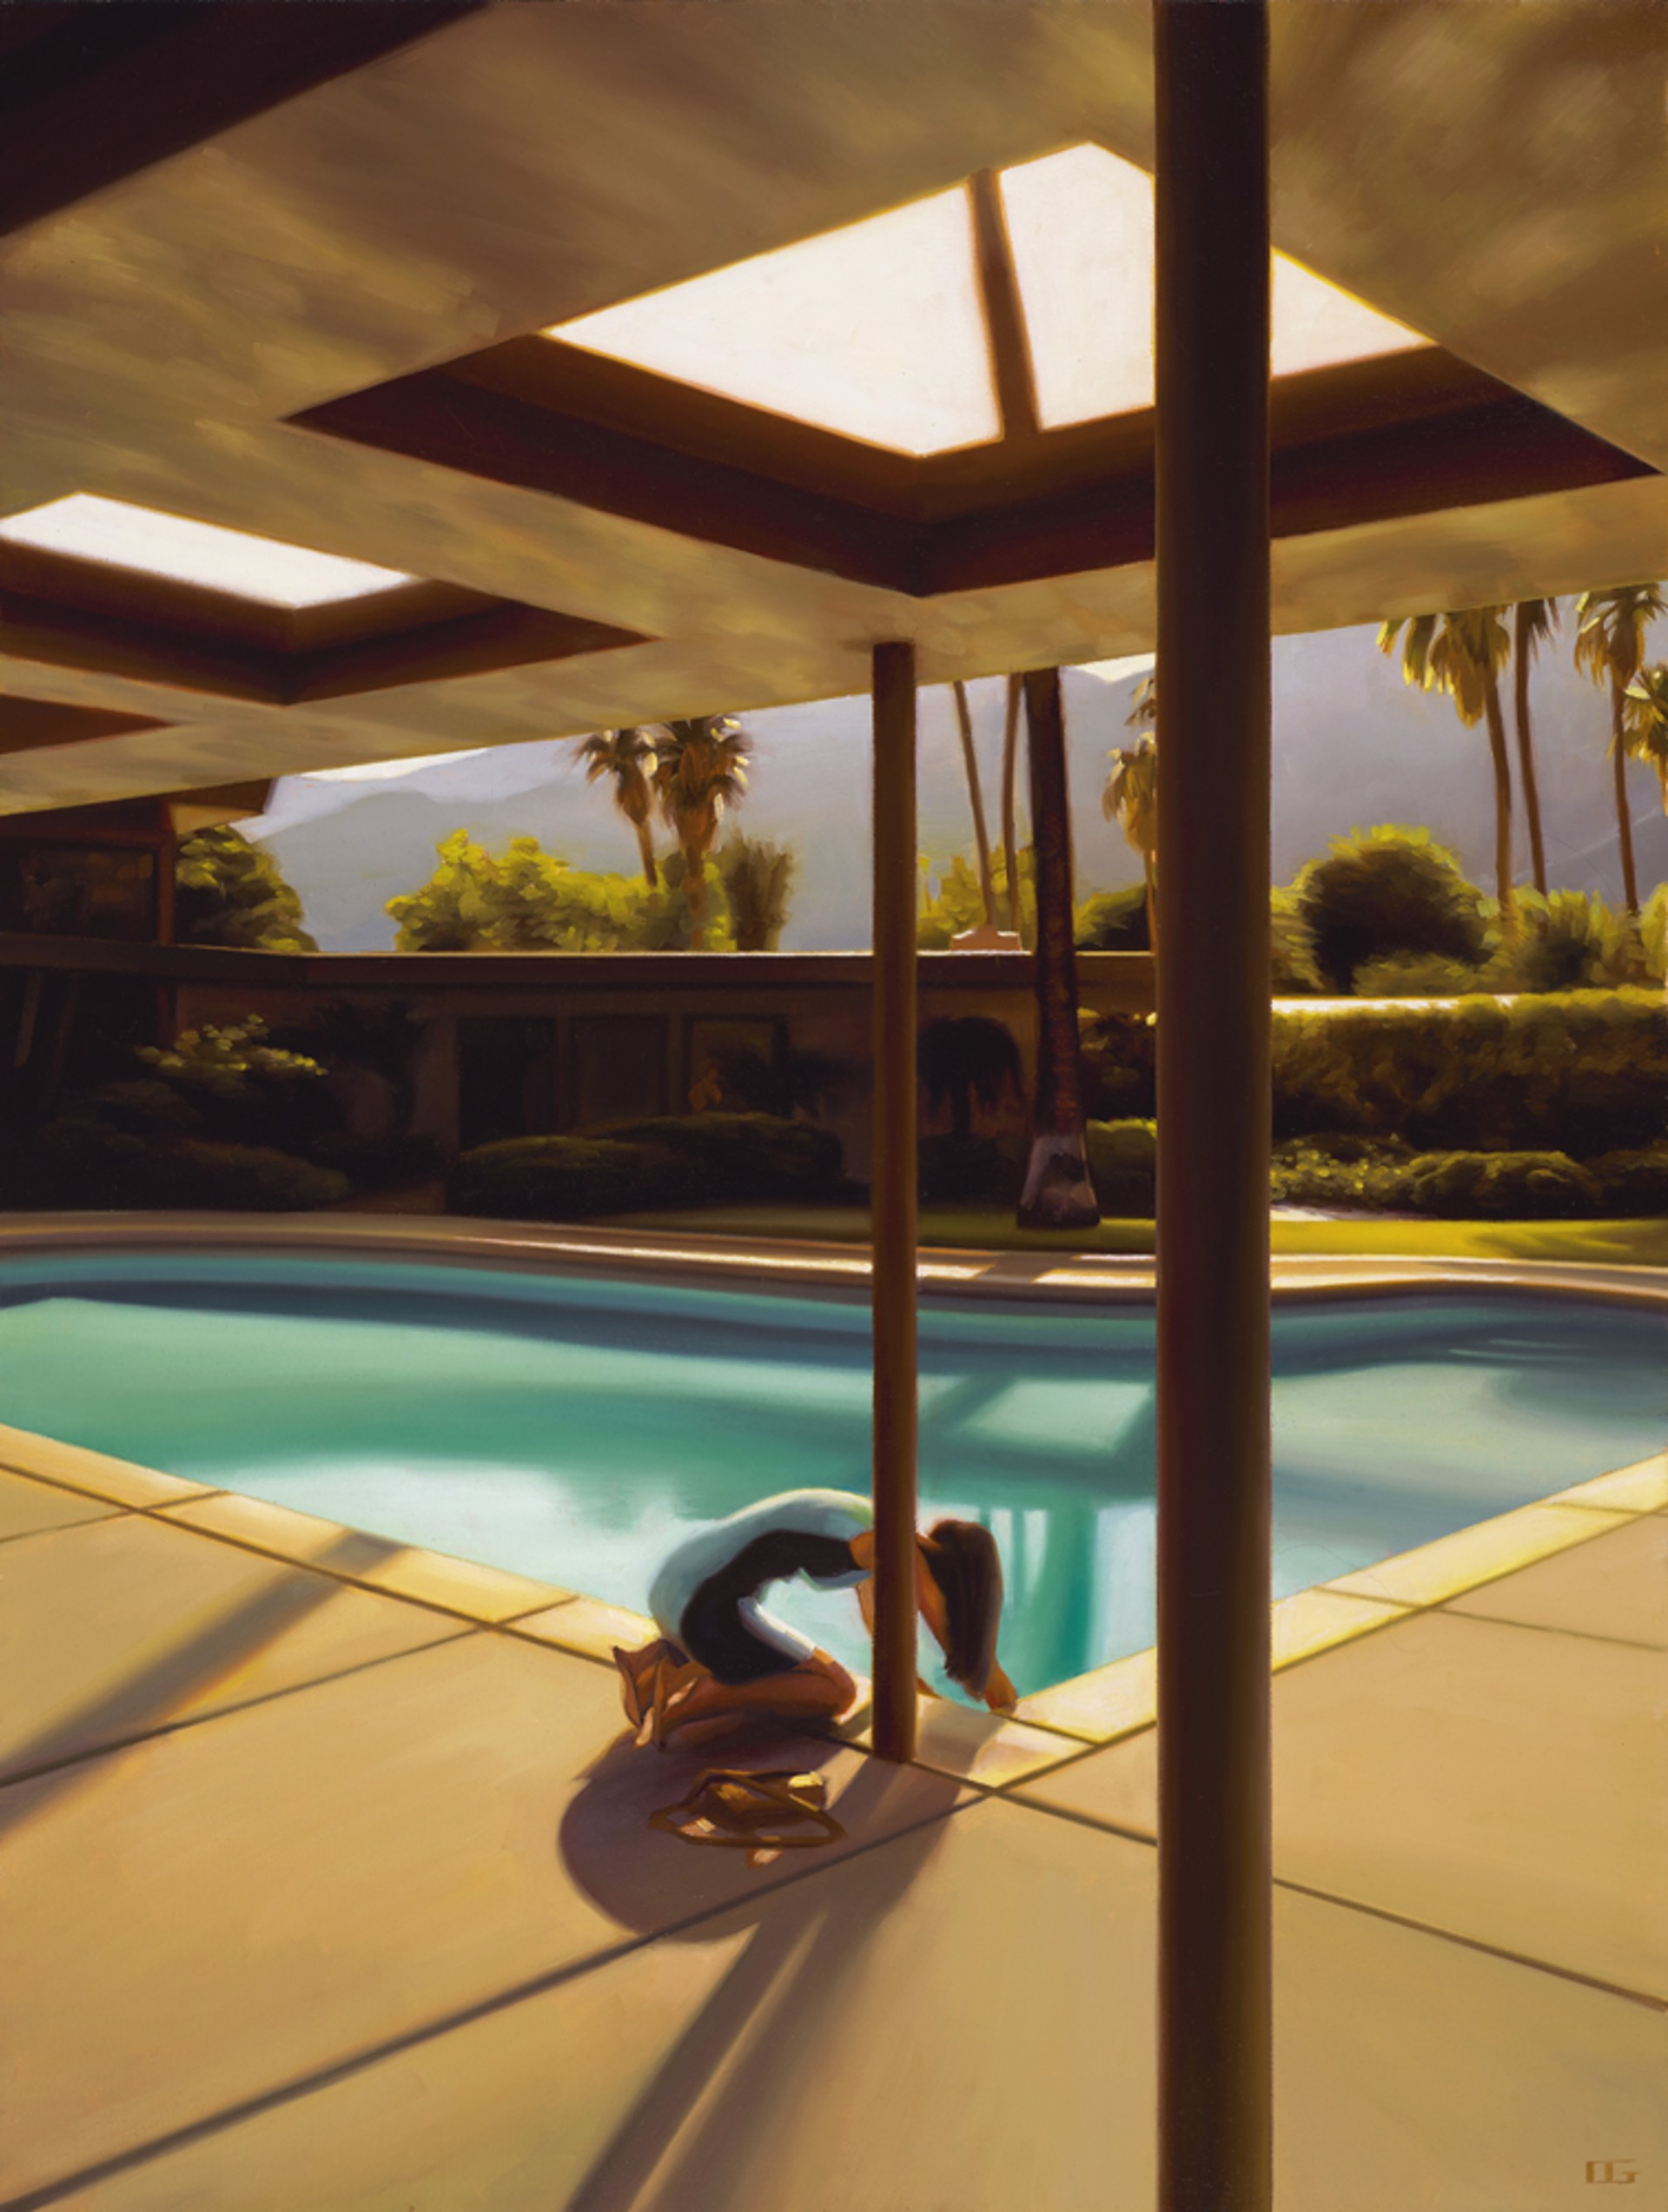 Testing the Water (Sinatra House) (S/N) by Carrie Graber